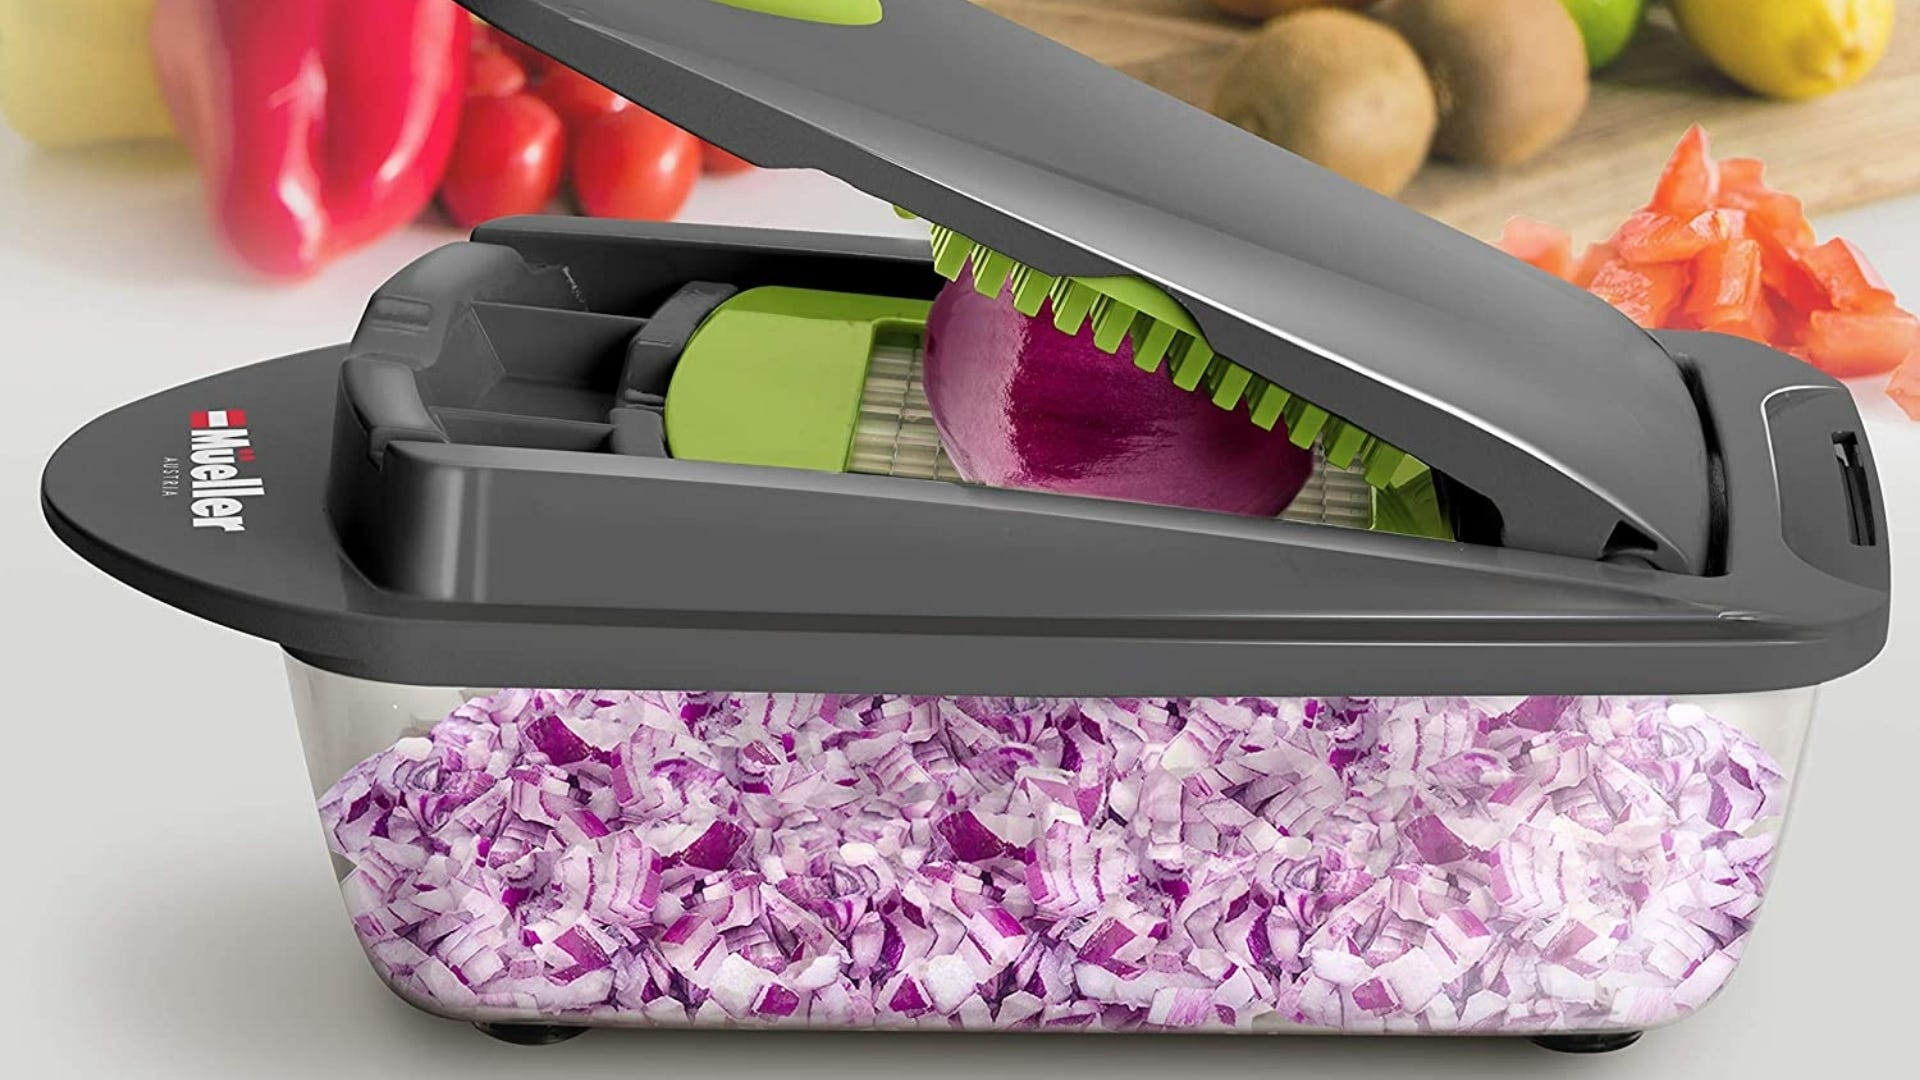 Vegetable chopper cutting up red onion